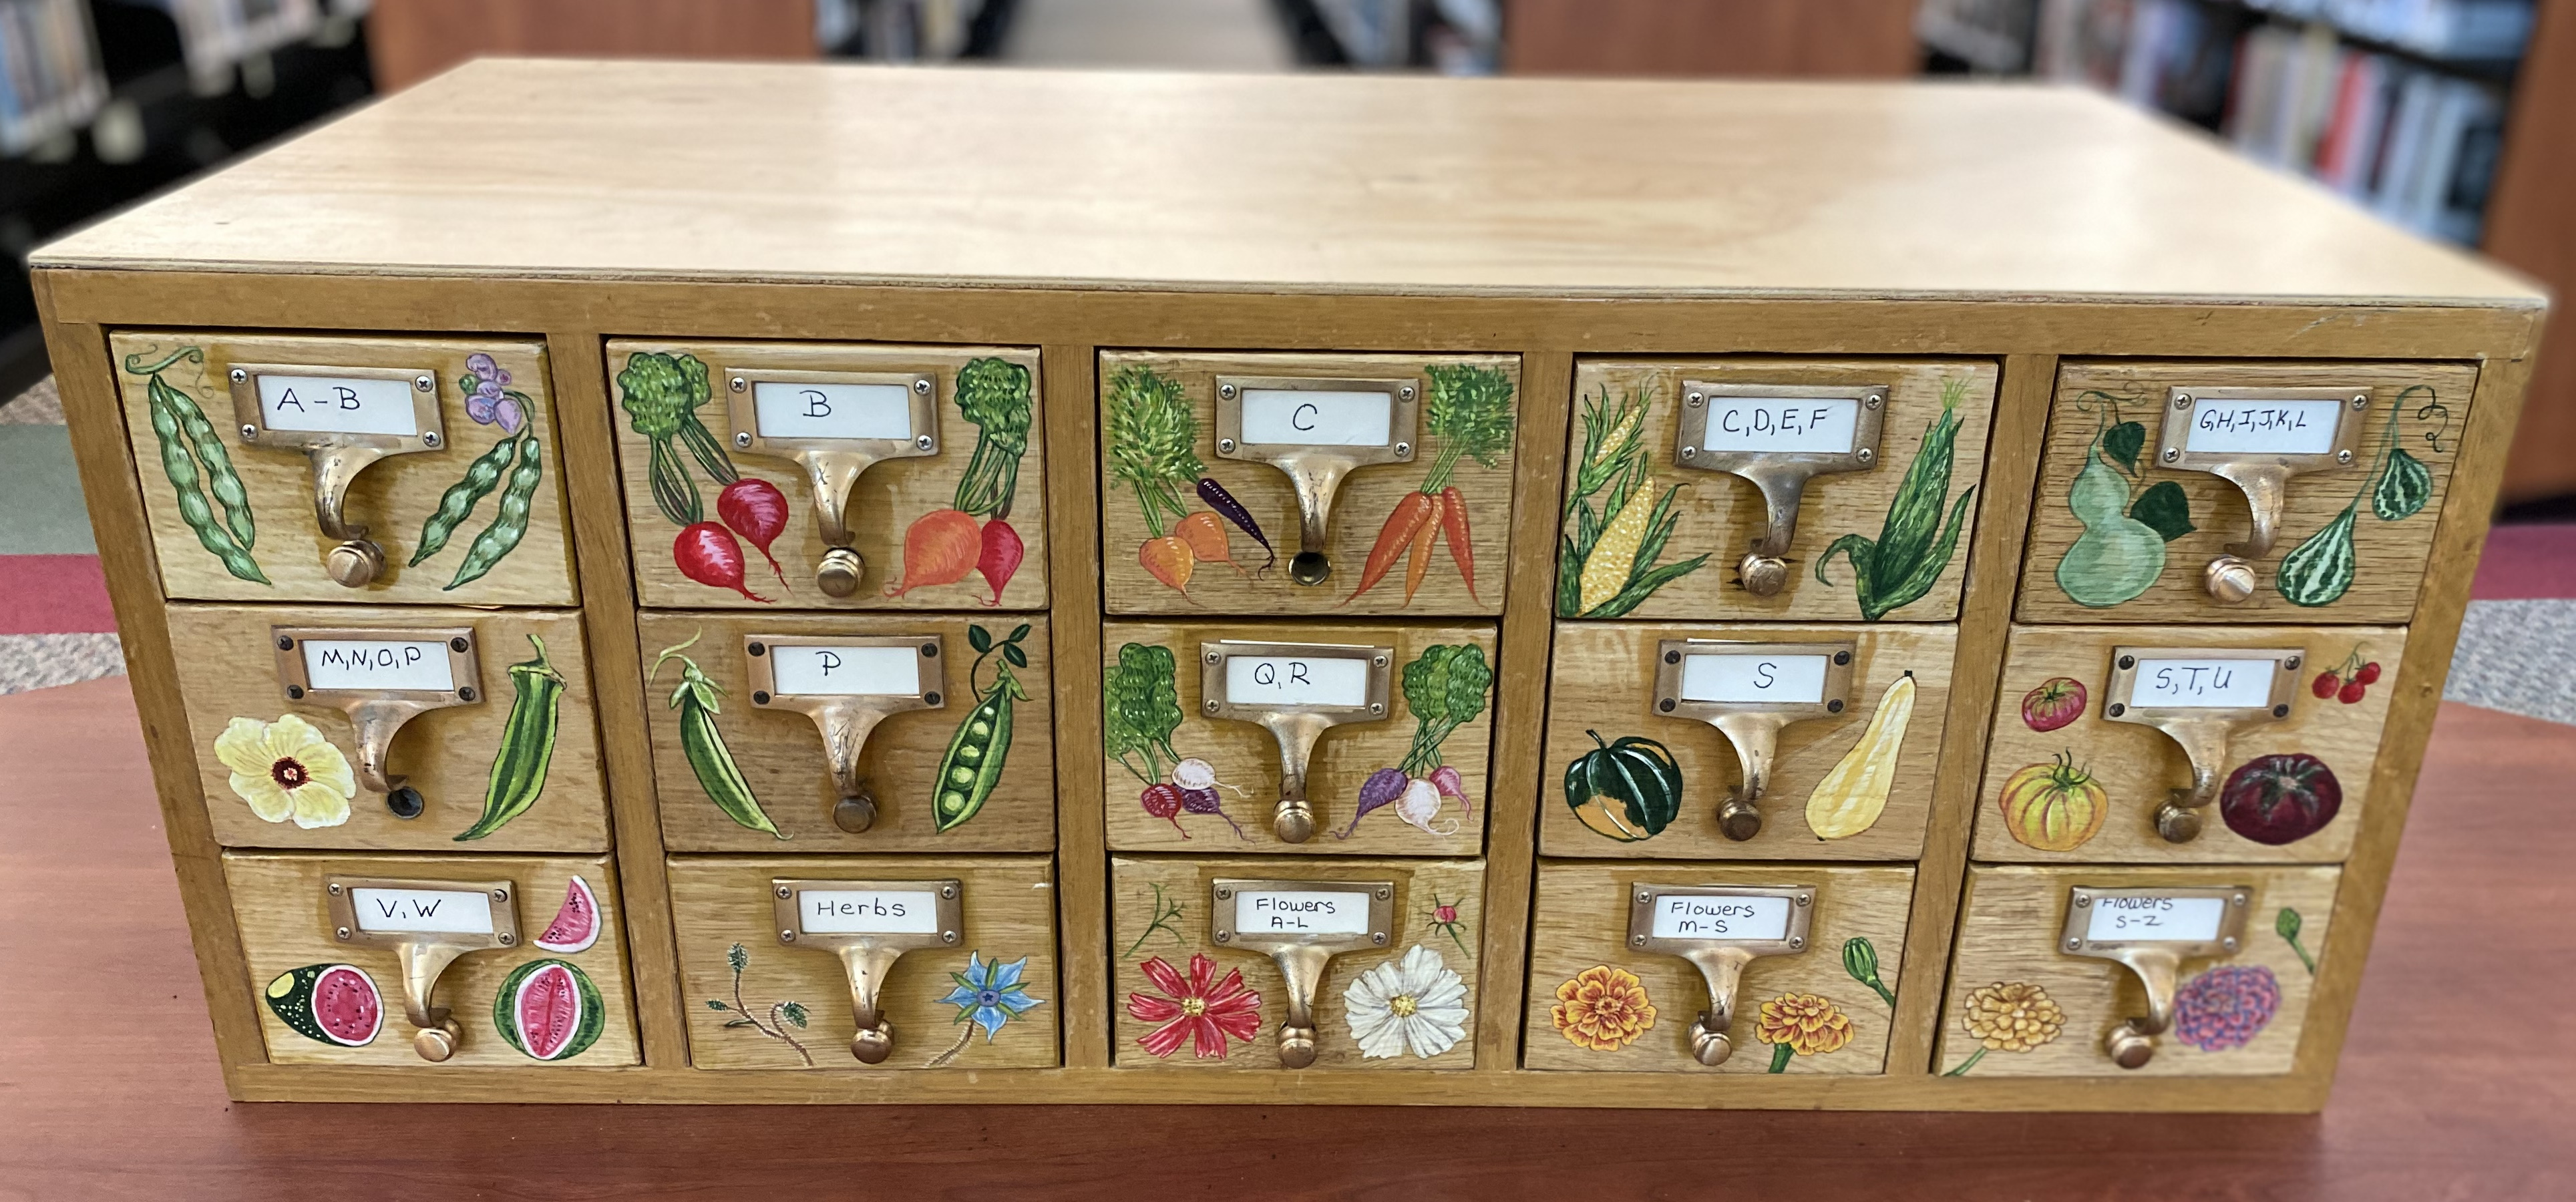 Seed Library Card Catalog painted cropped